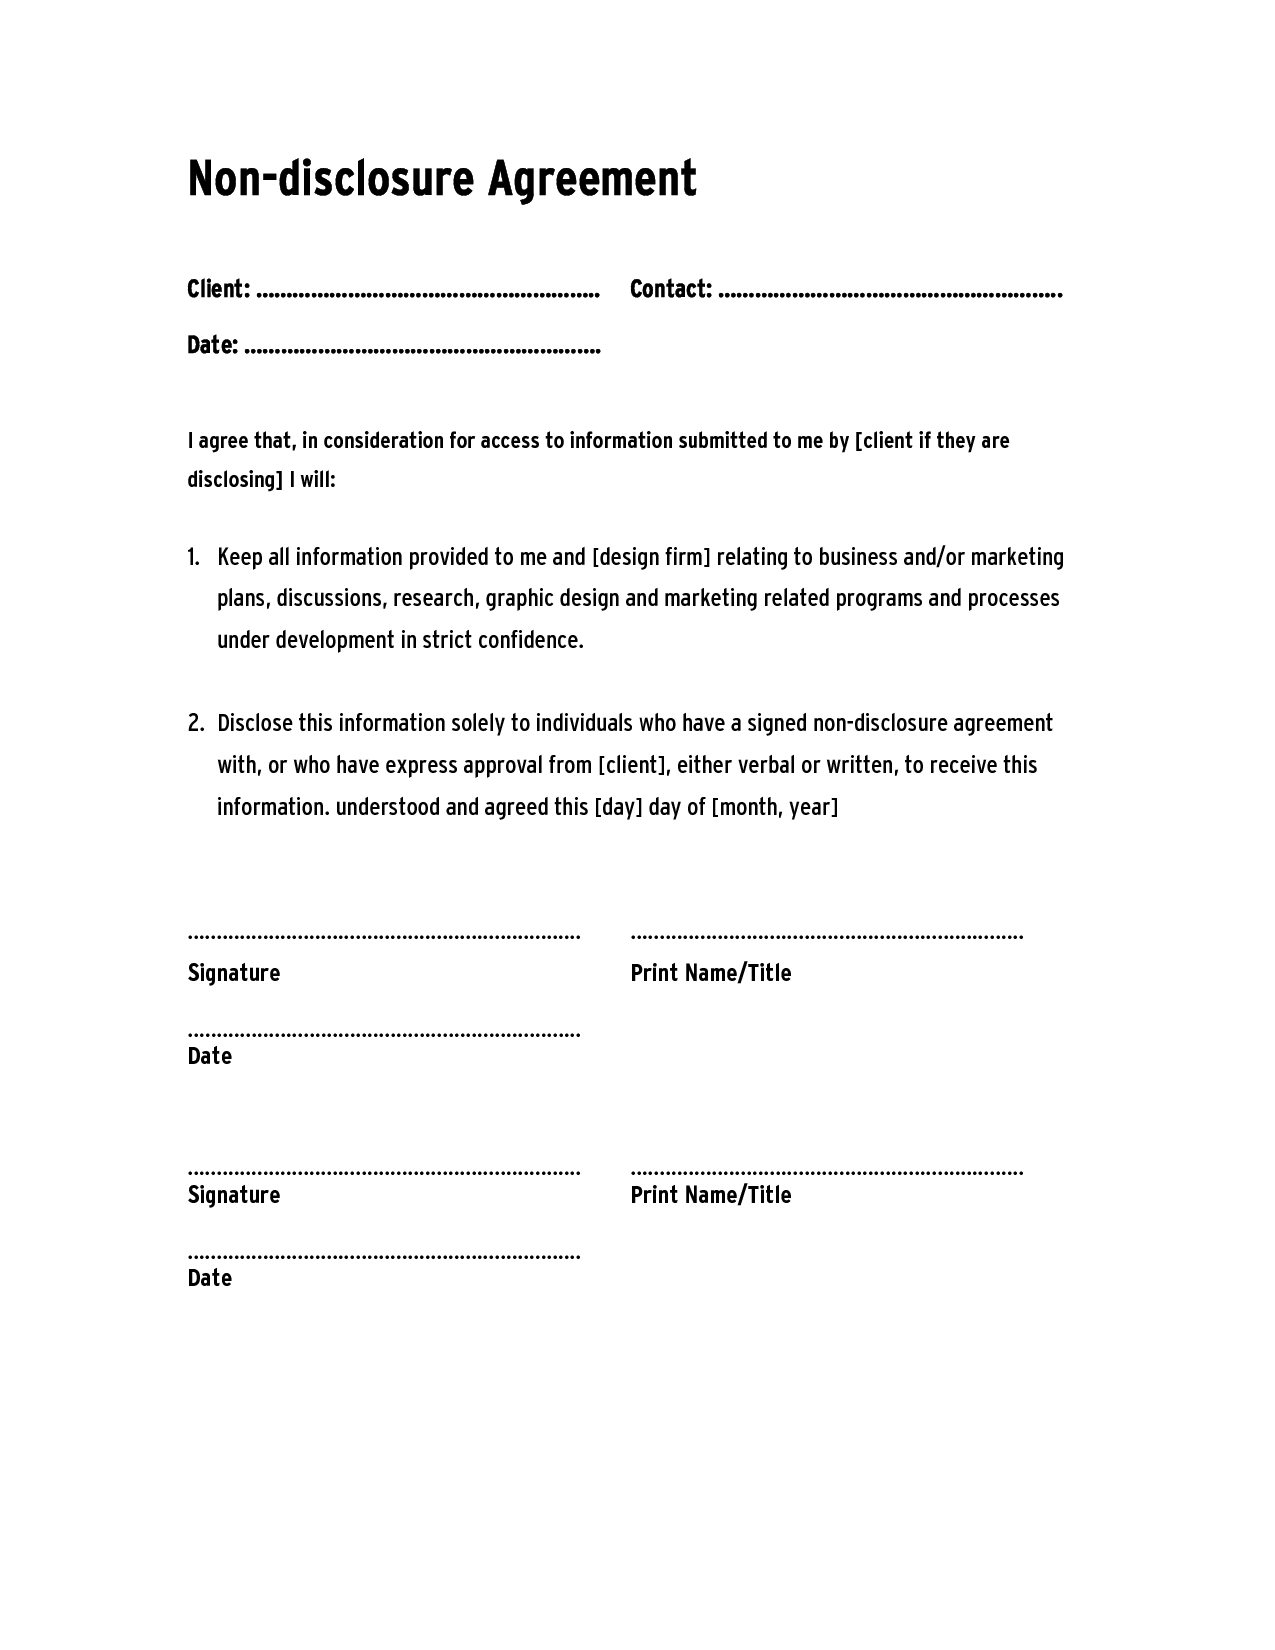 Non Disclosure Agreement Template ,confidentiality Agreement - Free Printable Non Disclosure Agreement Form